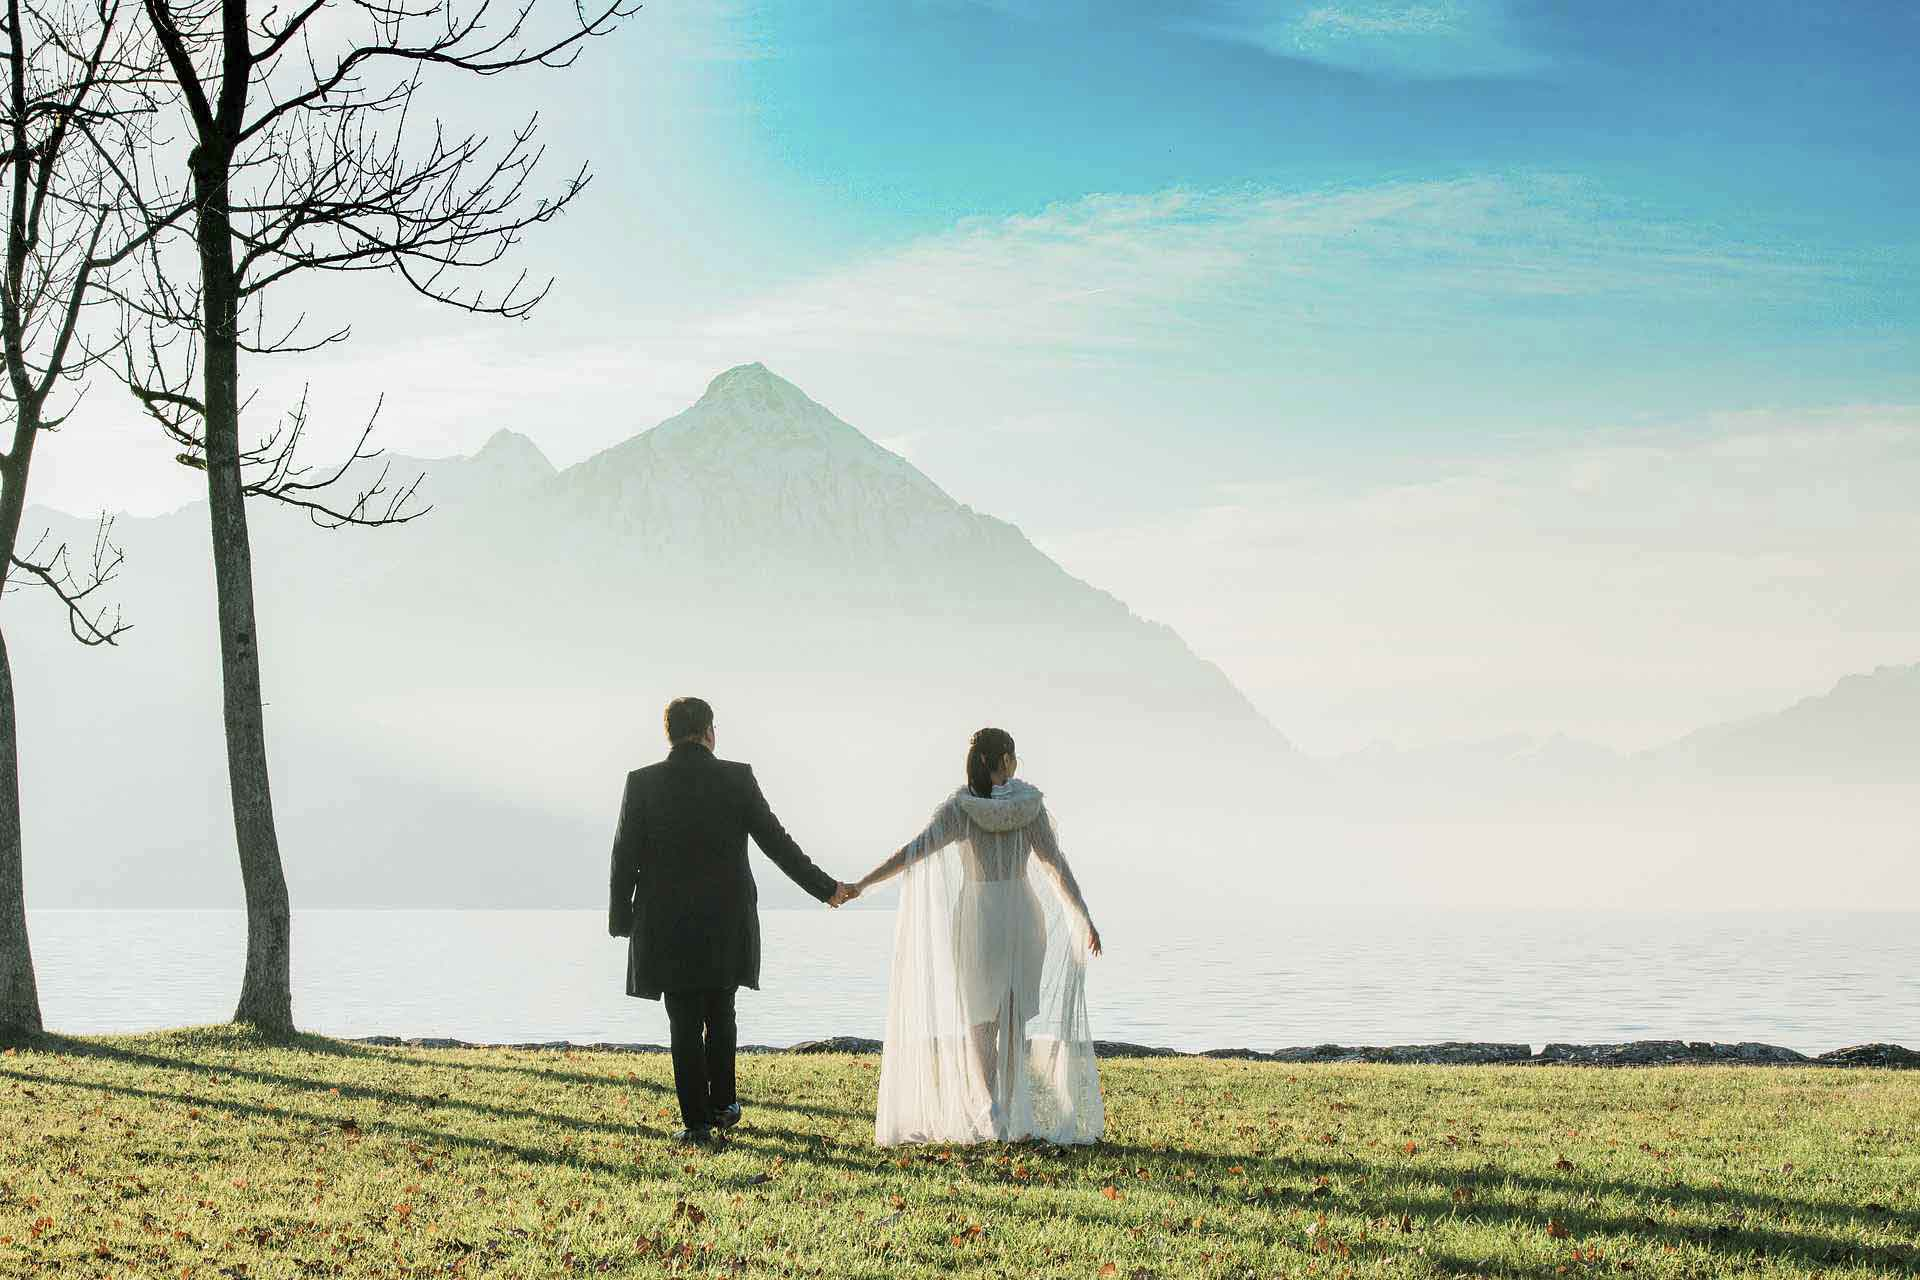 Couples photo shoot by Thunersee lake